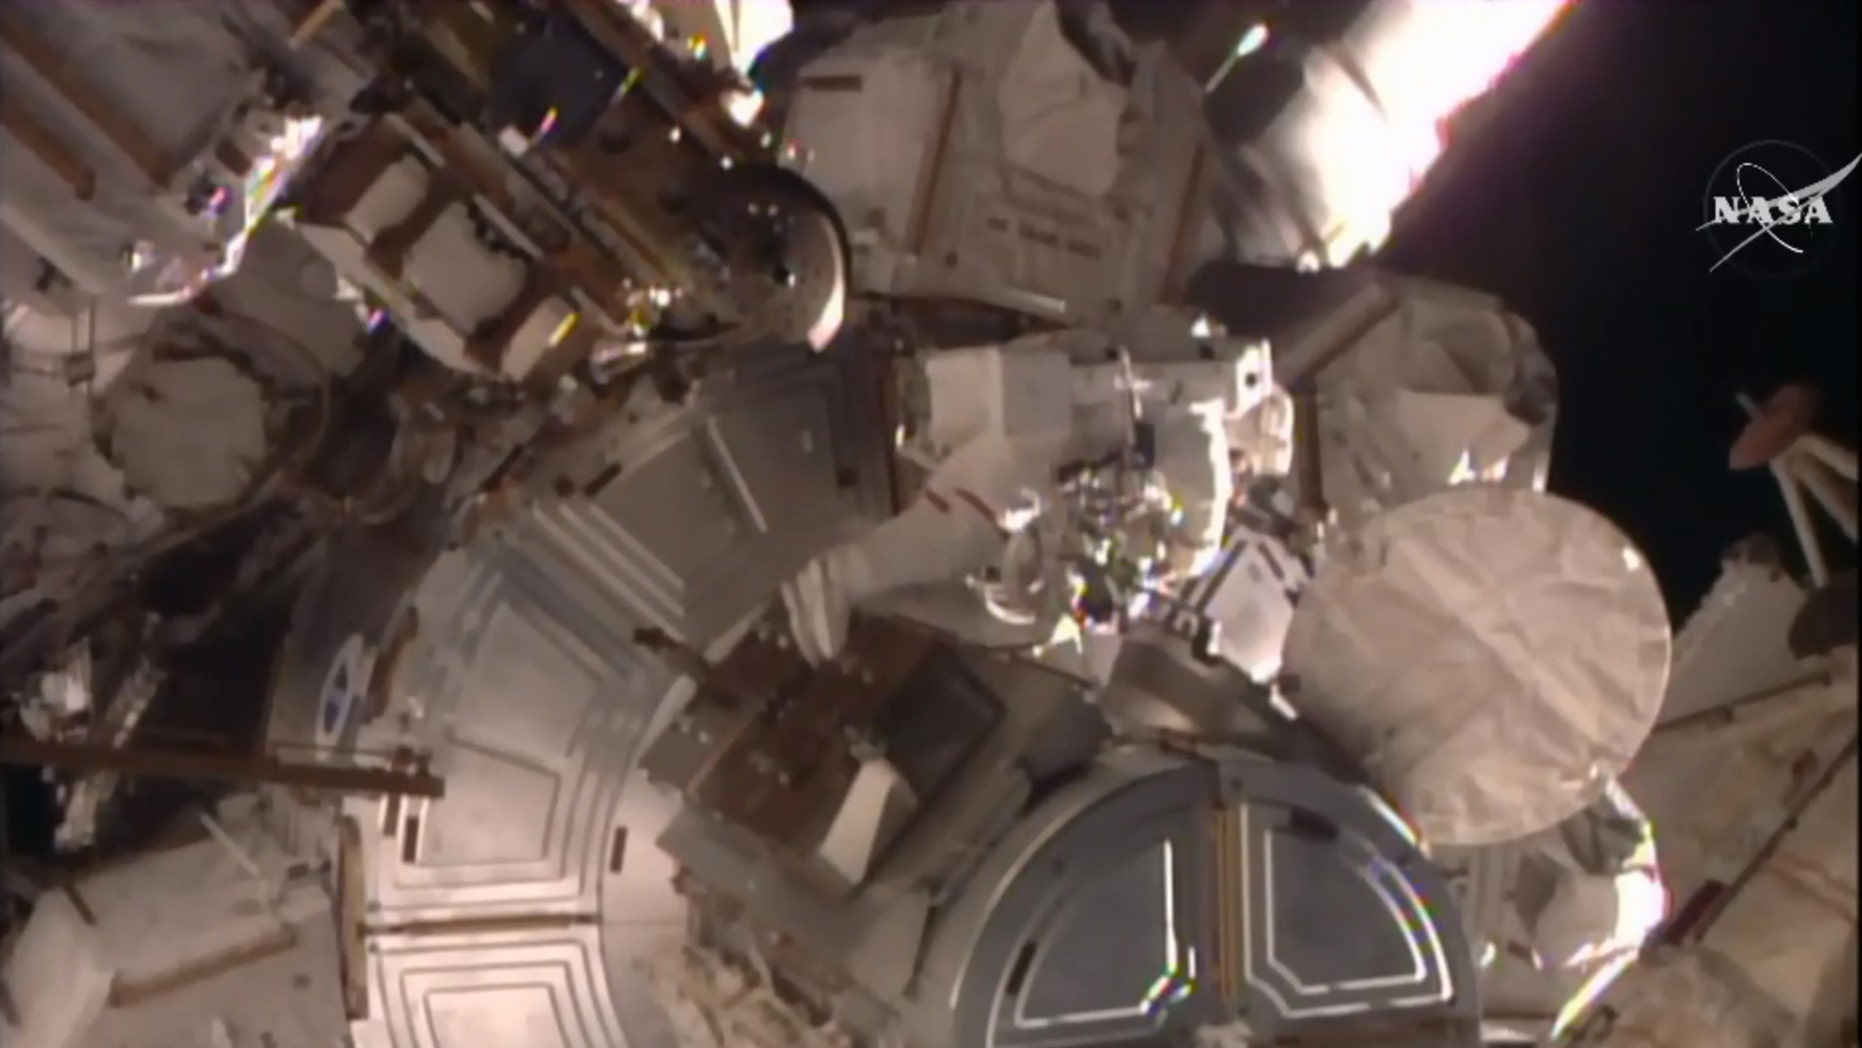 File photo - In this frame grab from video provided by NASA-TV, U.S. astronaut Timothy Kopra emerges from the International Space Station, Friday, Jan. 15, 2016. (NASA-TV via AP)